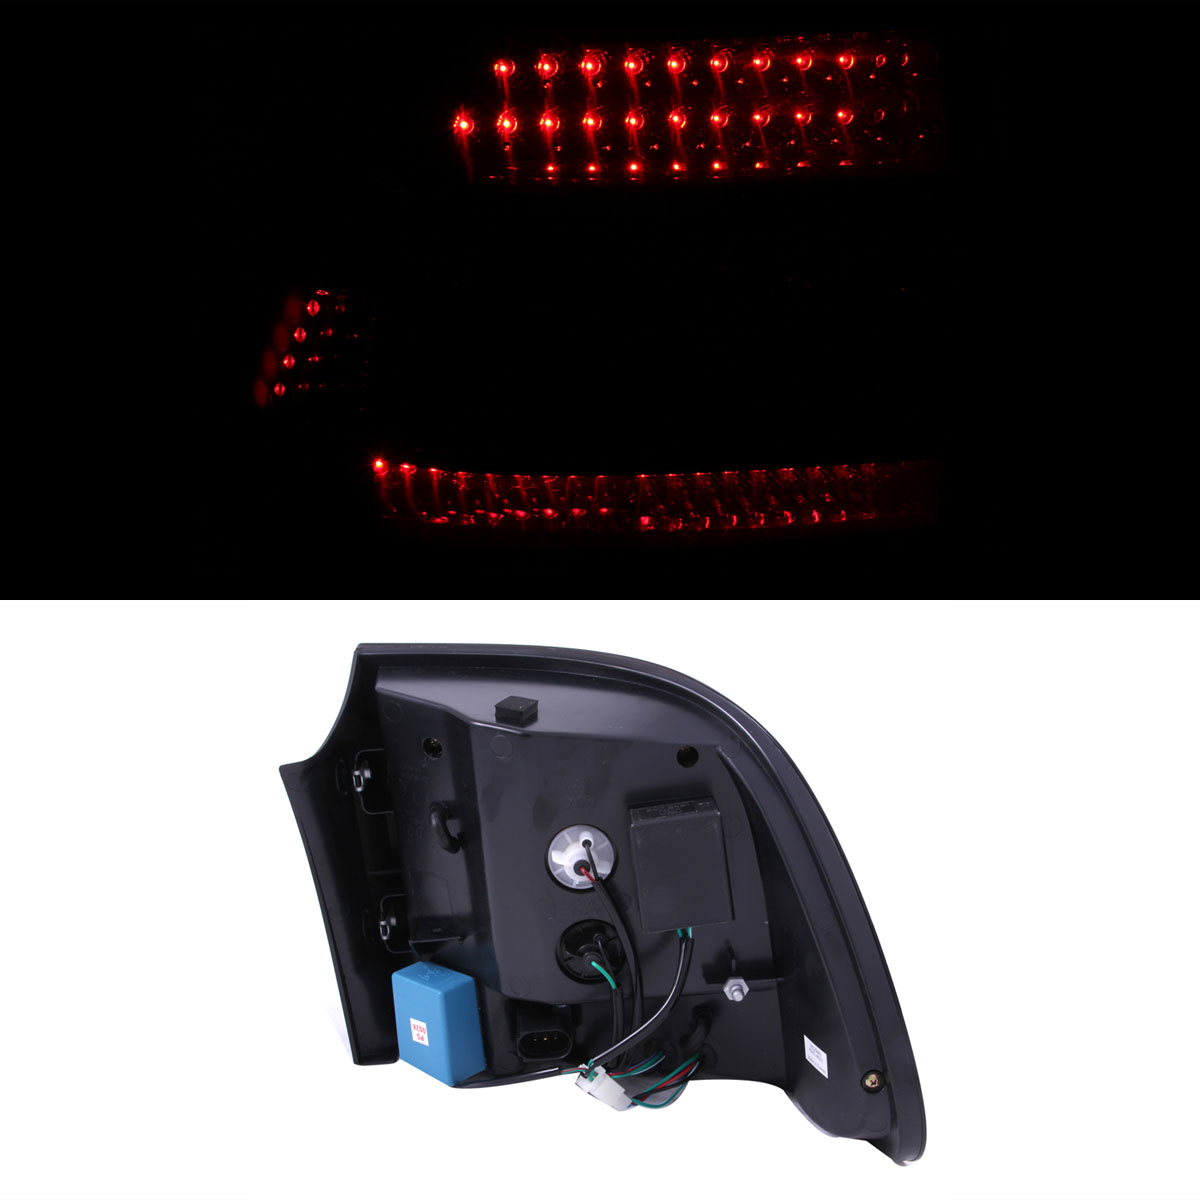 2006 Acura Tl Tail Lights For Sale: 2003 2004 2005 2006 Porsche Cayenne LED Red Tail Lights